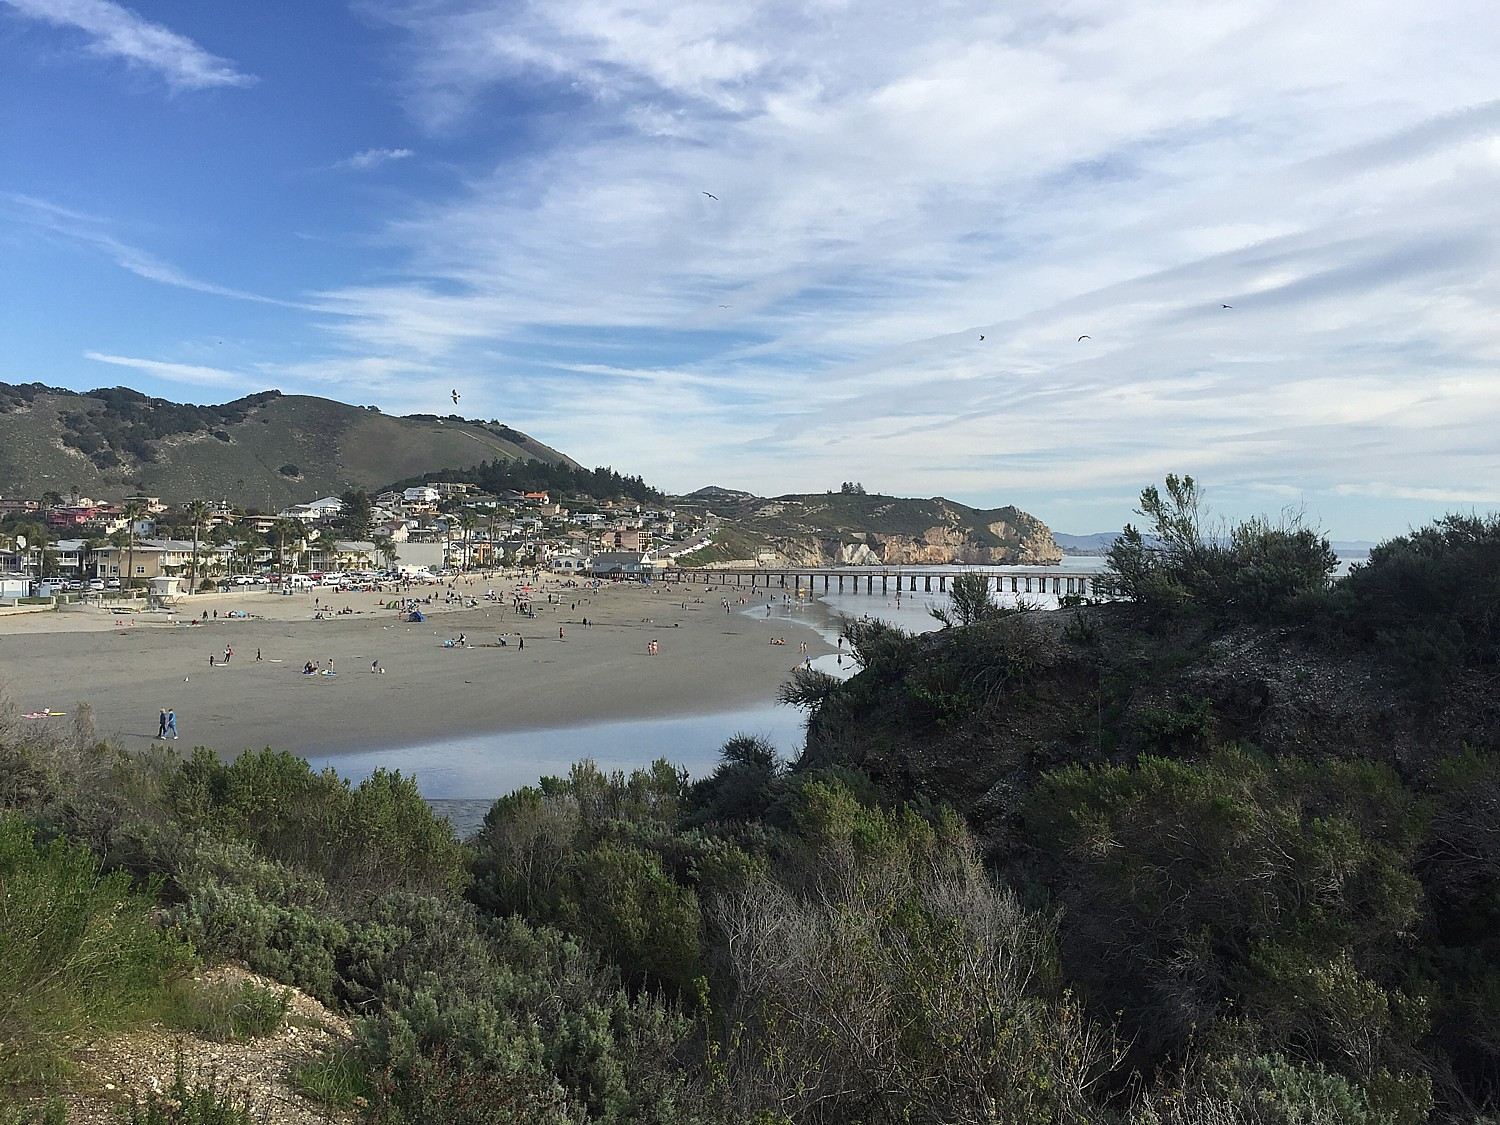 moral compass great places to go where the going does good avila beach valley along ca highway 1 enter sweepstakes join voluntourism program